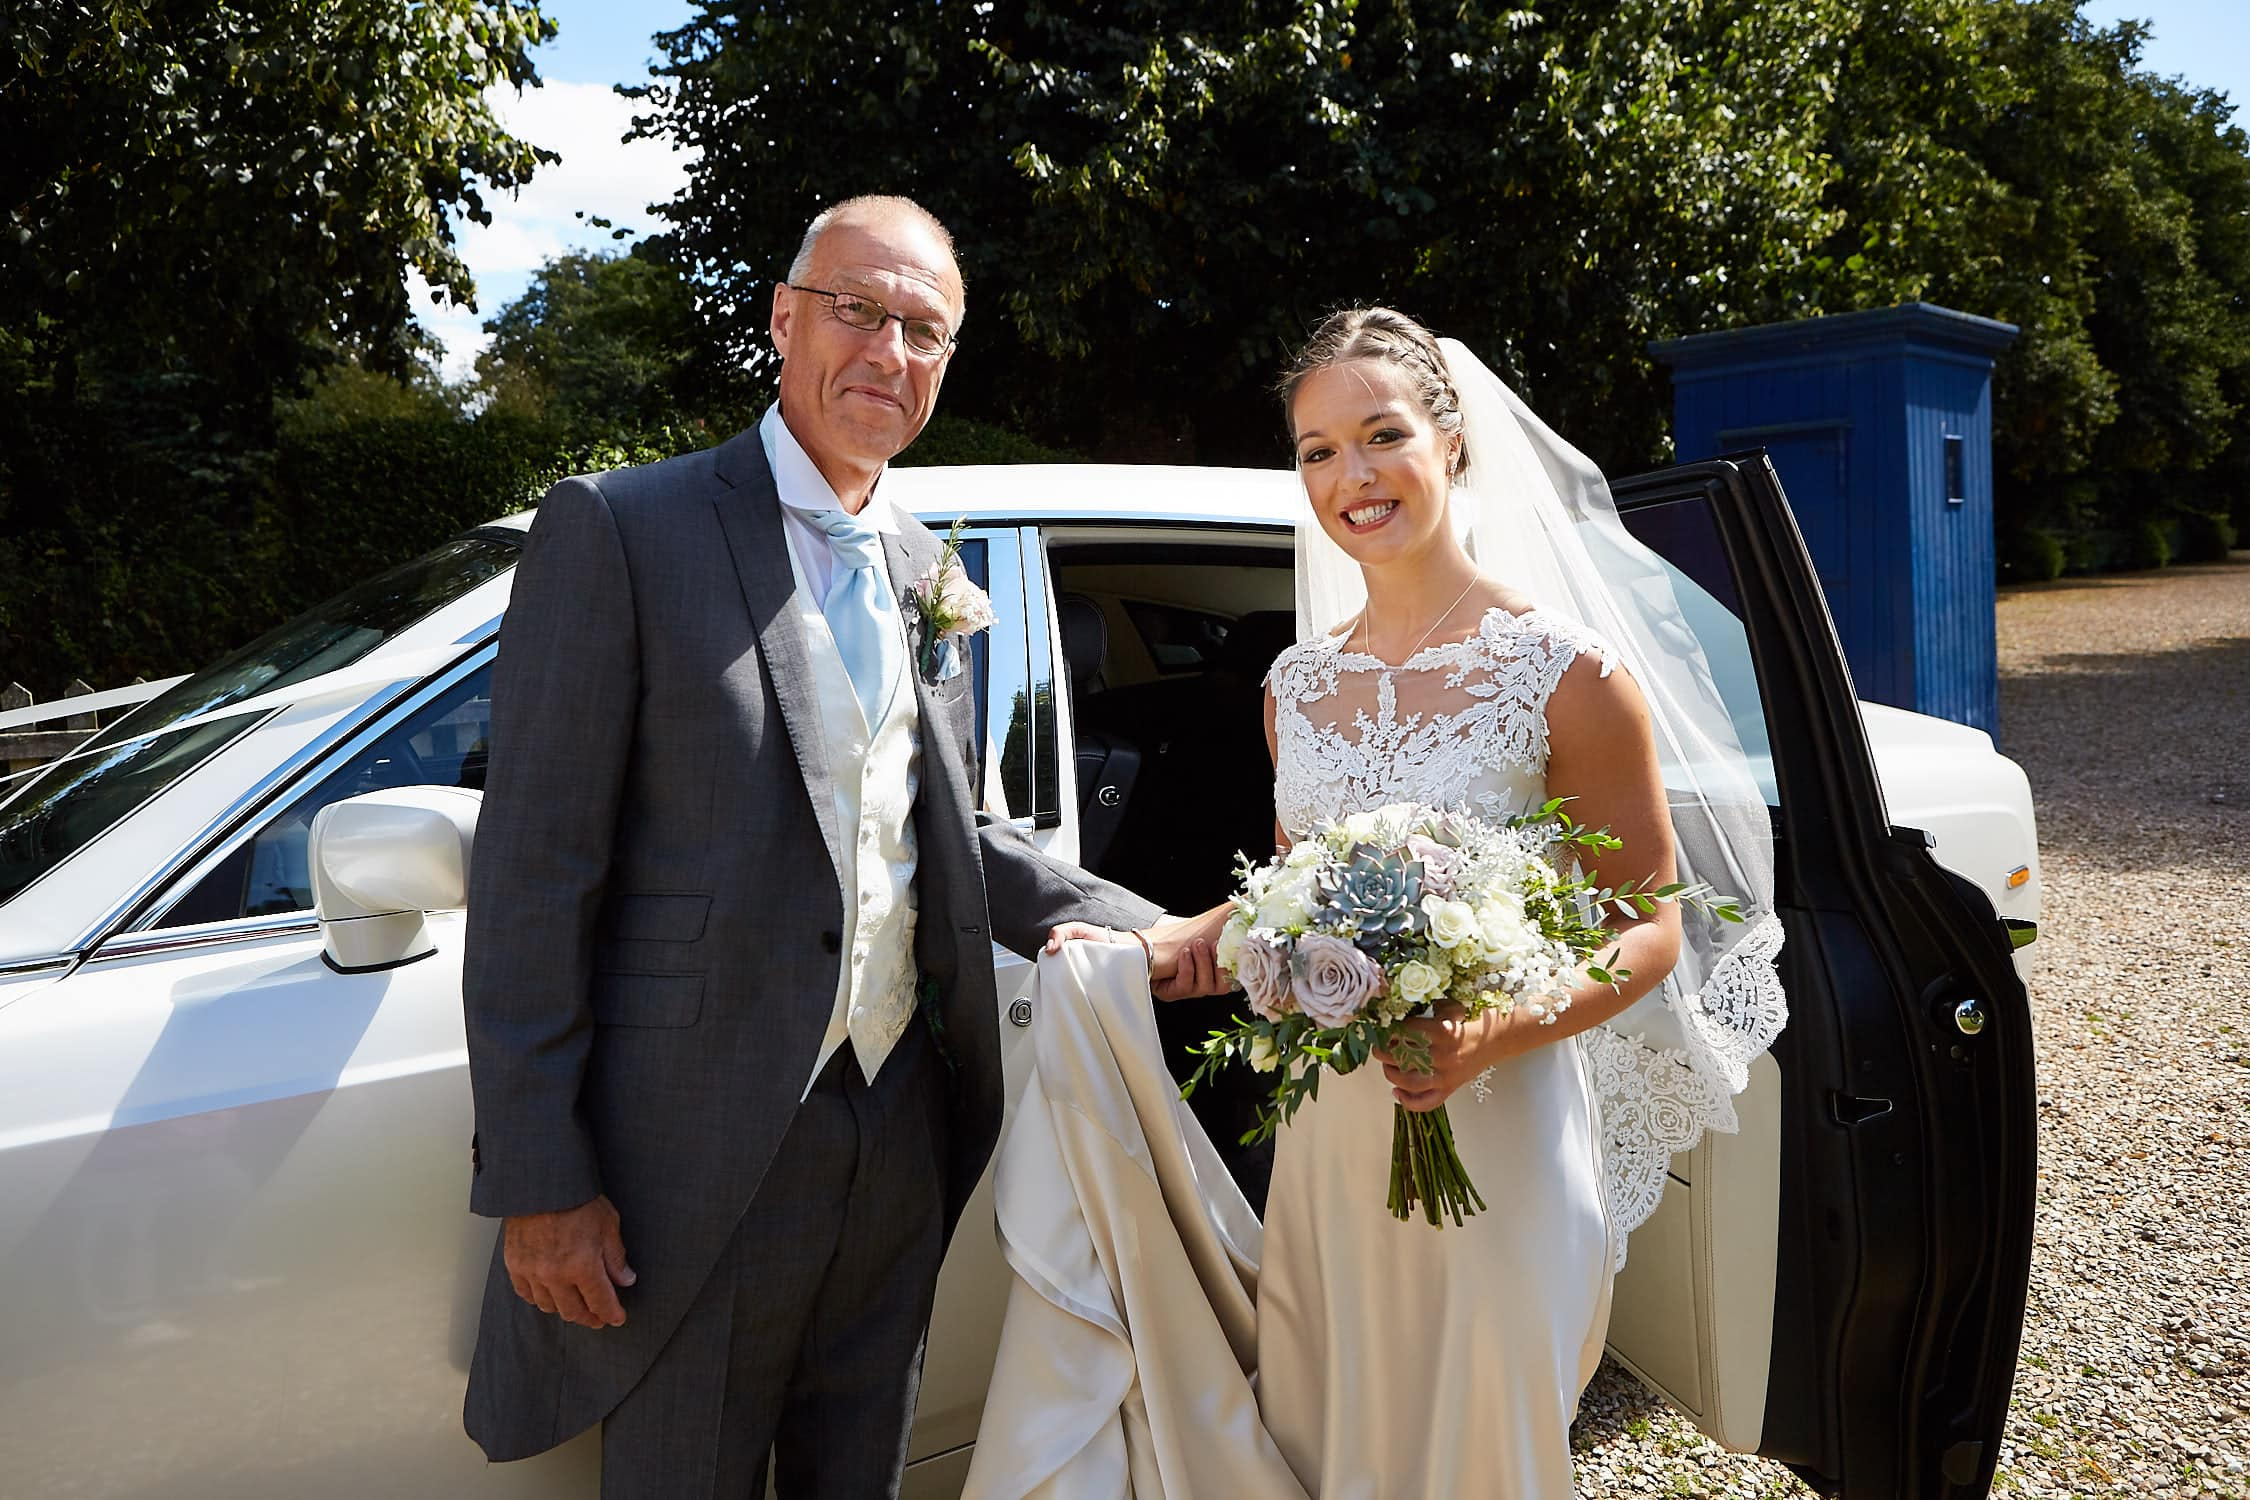 A bride poses with her father by their wedding car as they arrive at the wedding